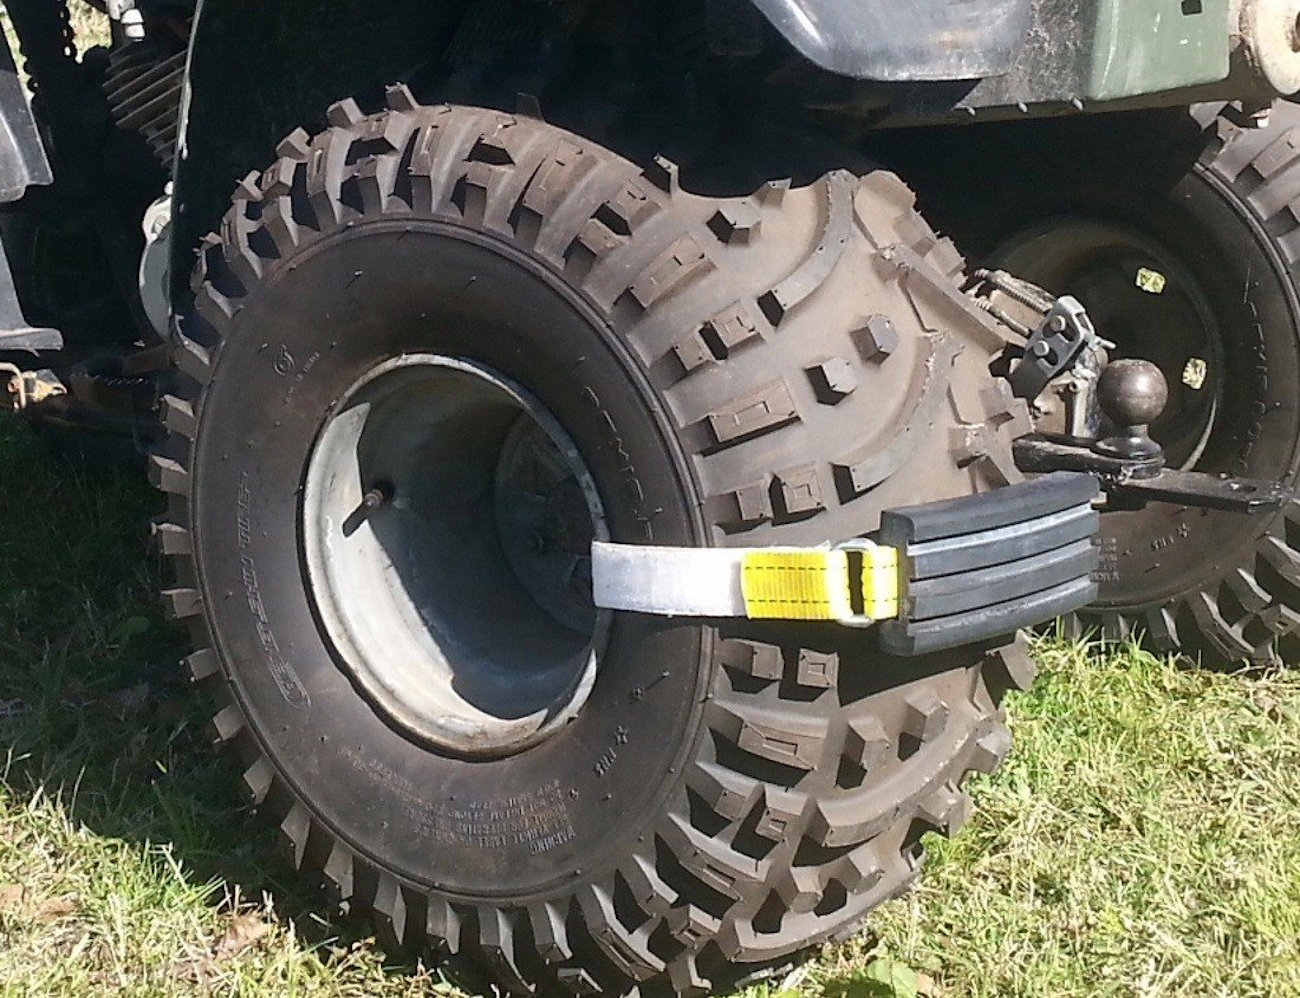 Trac-Grabber – The Traction Solution for Vehicles